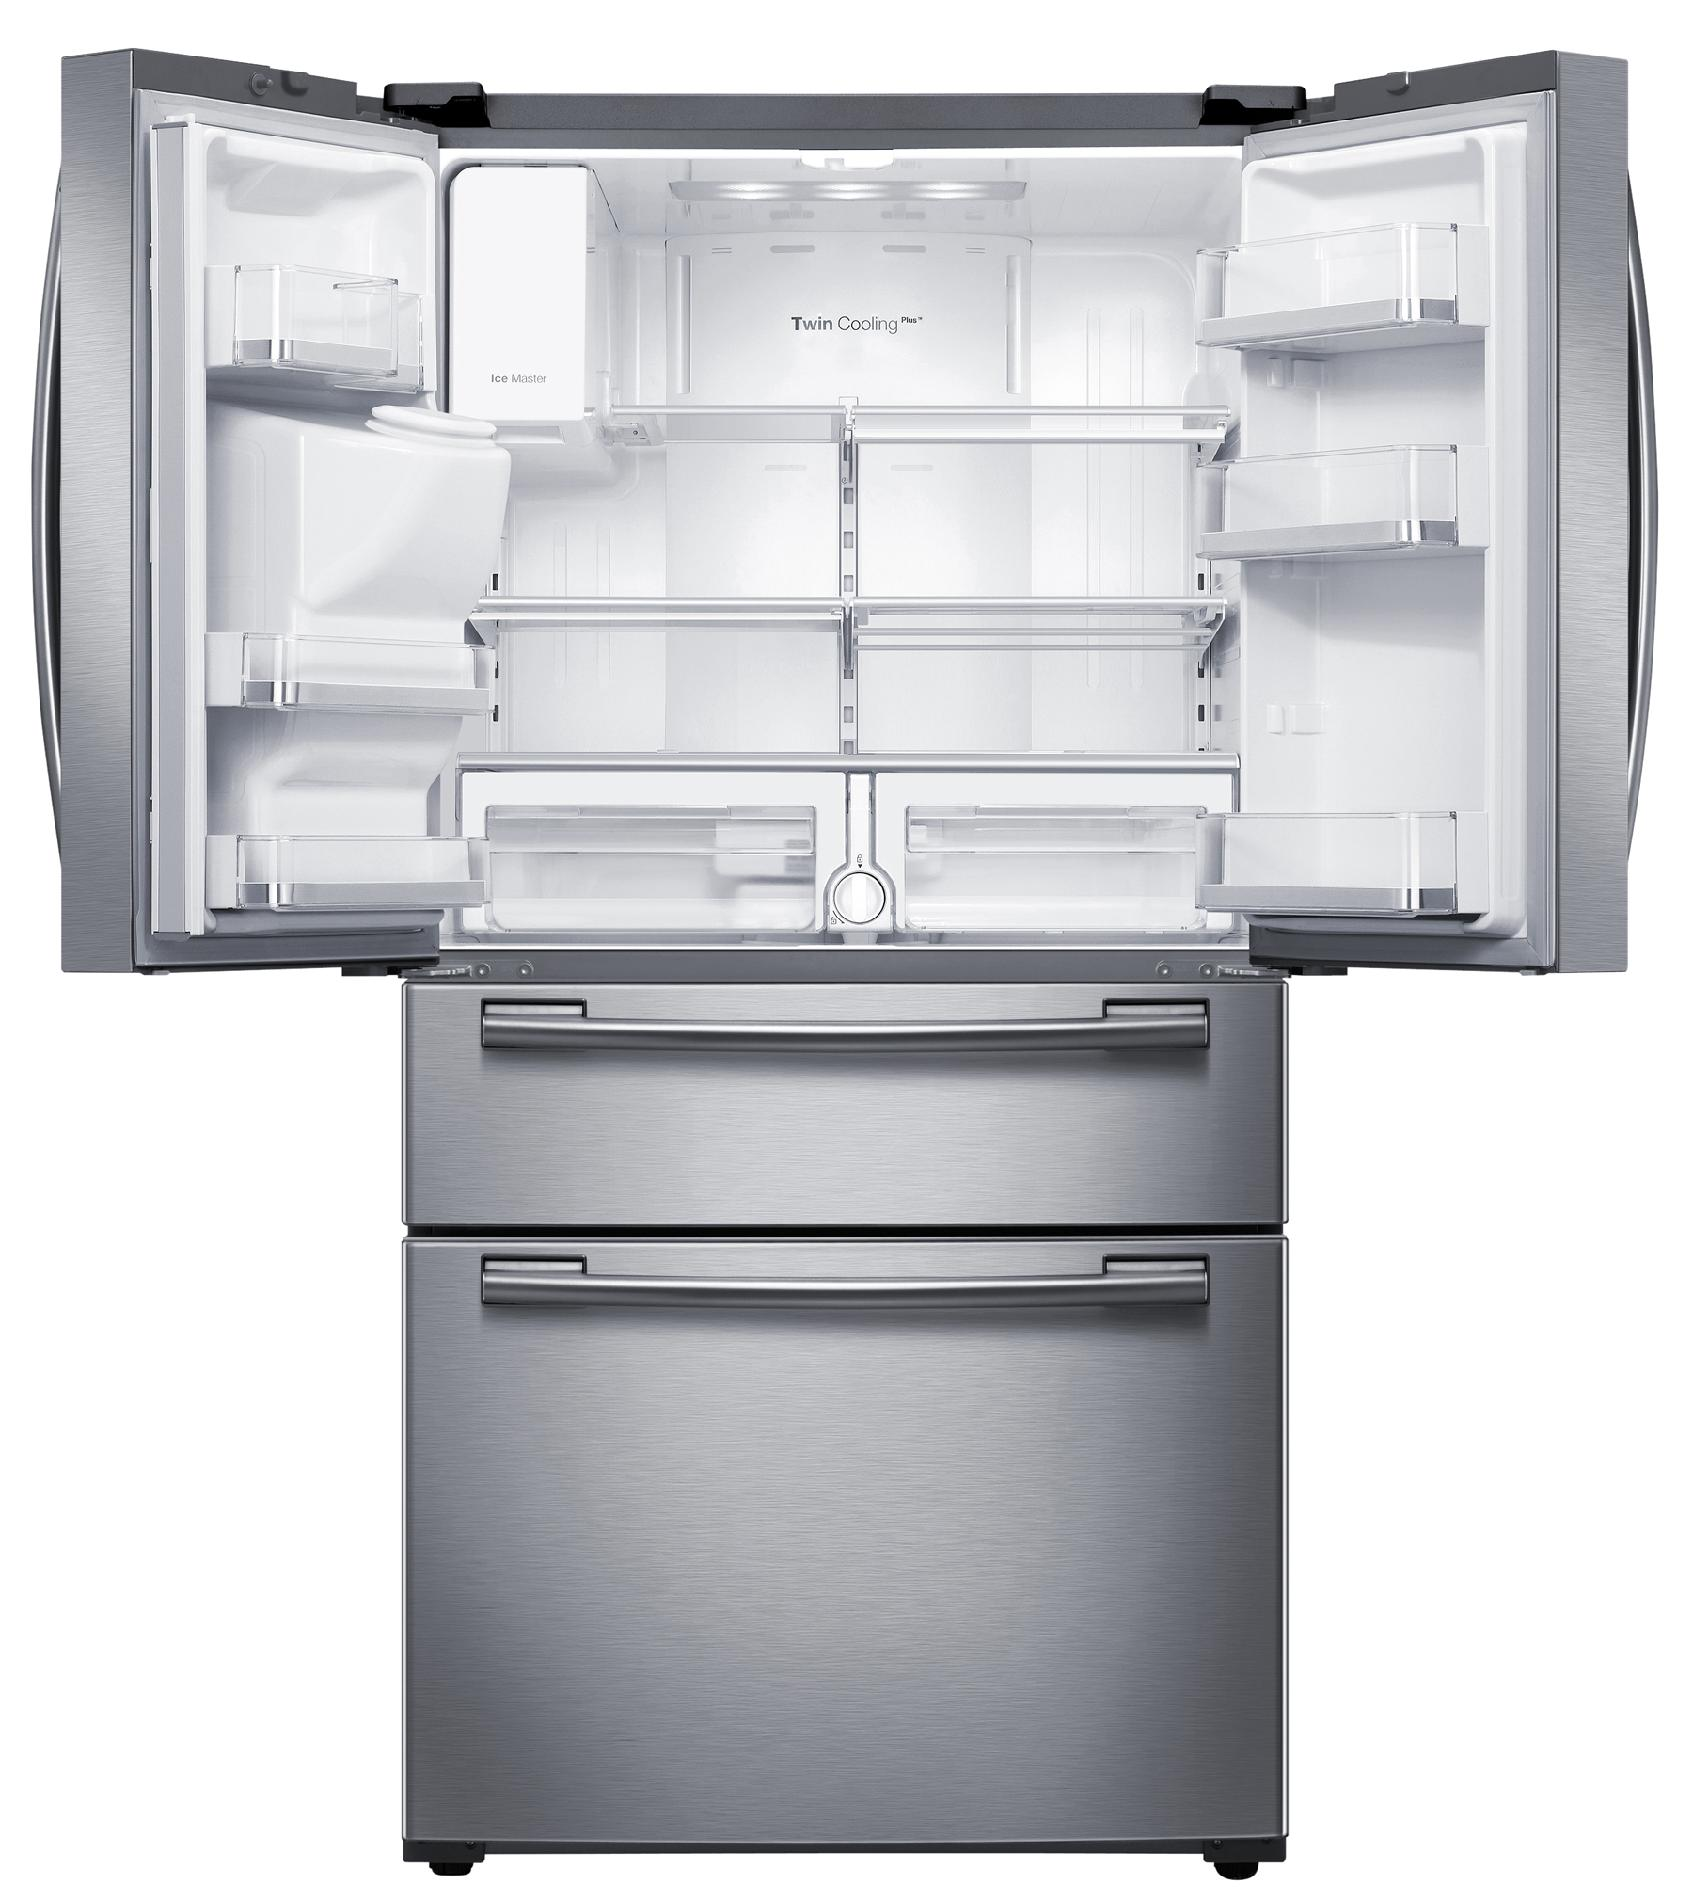 Samsung 25 cu. ft. 4-Door French Door Refrigerator - Stainless Steel